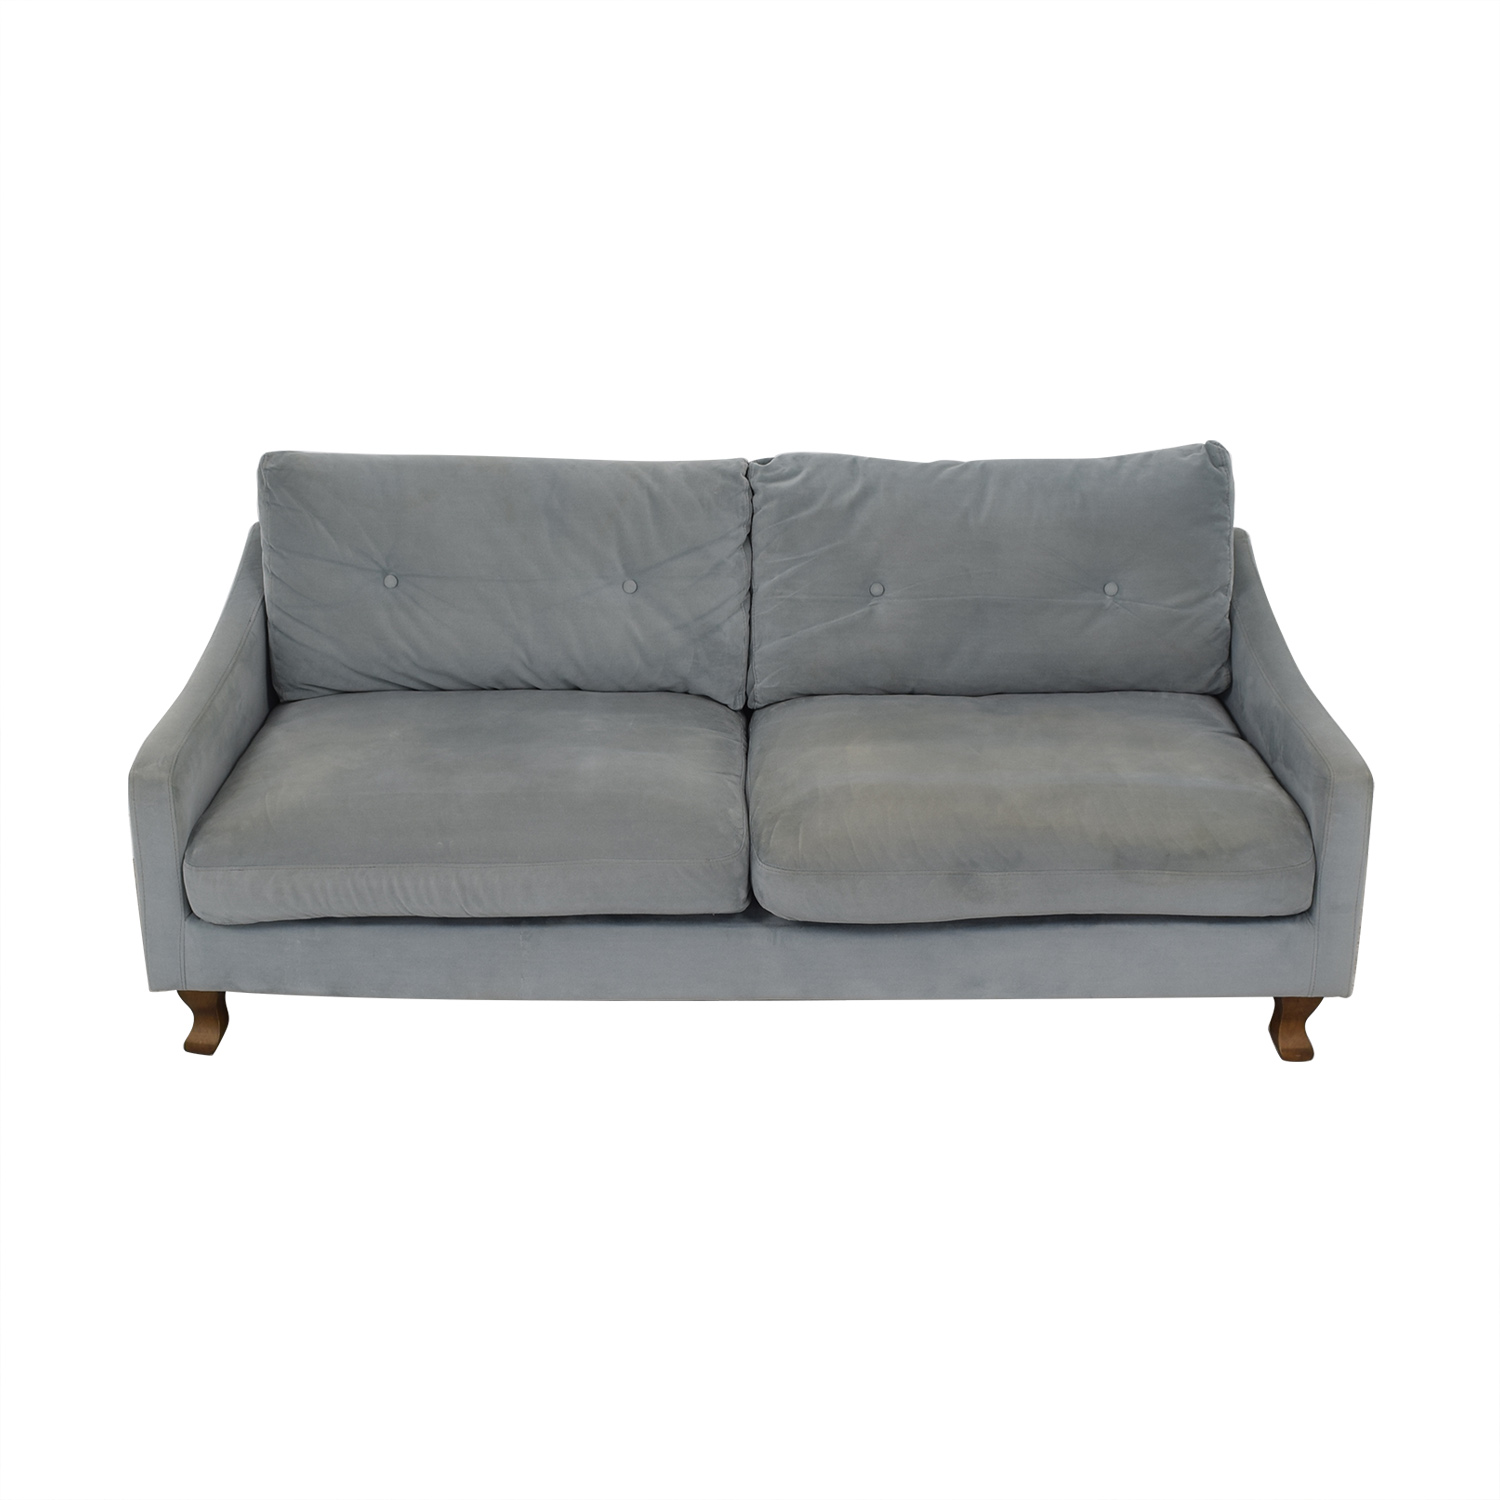 Urban Outfitters Urban Outfitters Two Cushion Sofa used